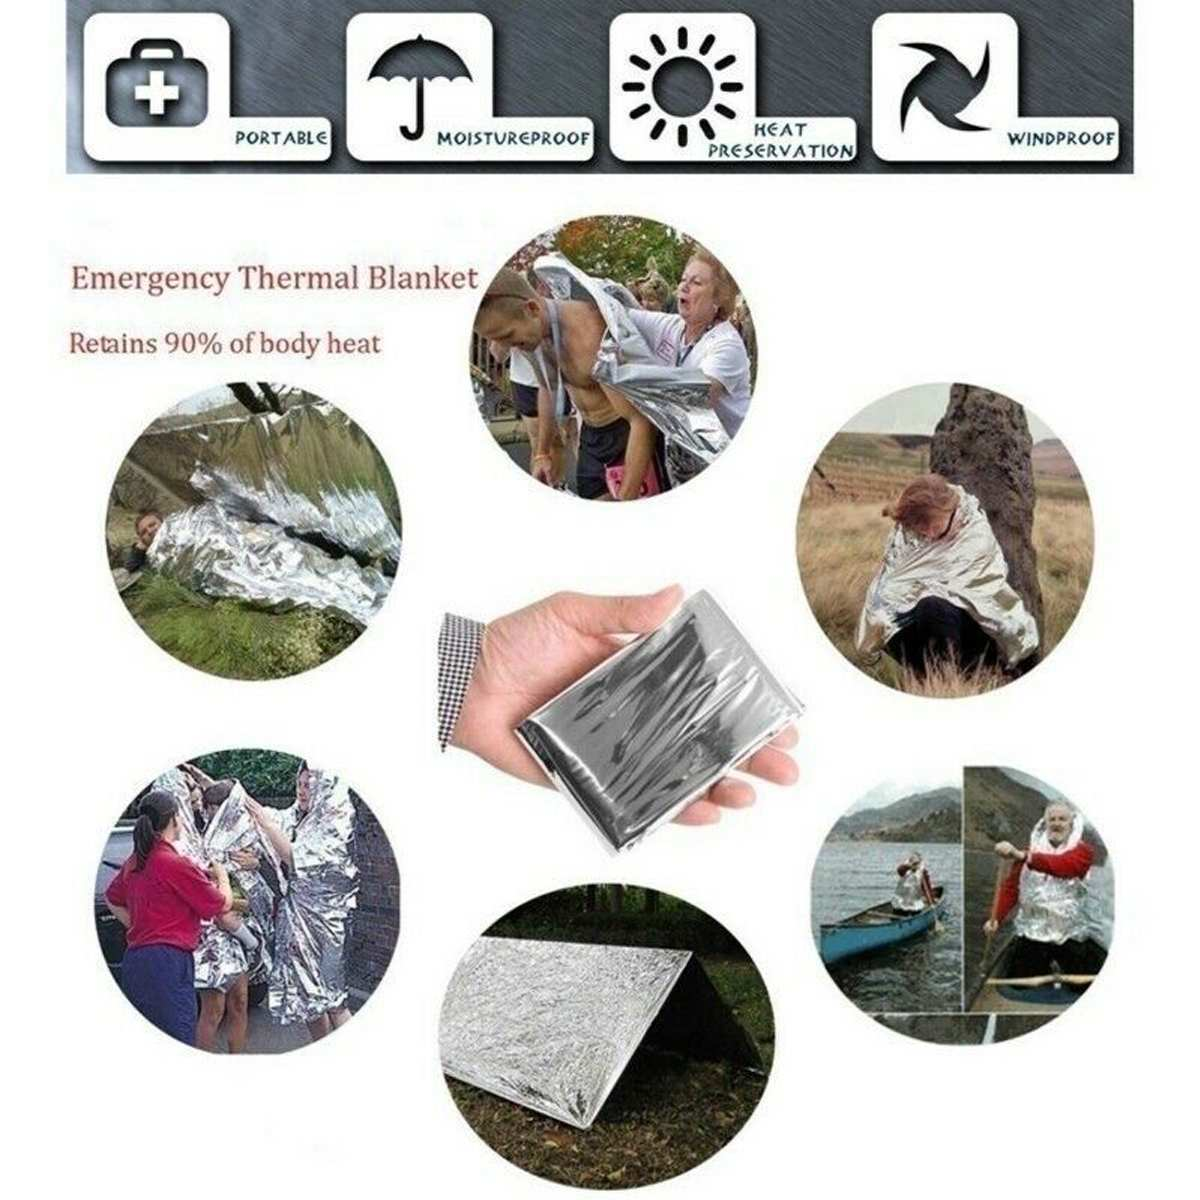 12 in 1 Emergency Survival Kit Outdoor Hiking Camping Tactical Gear Multi Tools Military Tactical Defense-Equitment Tools